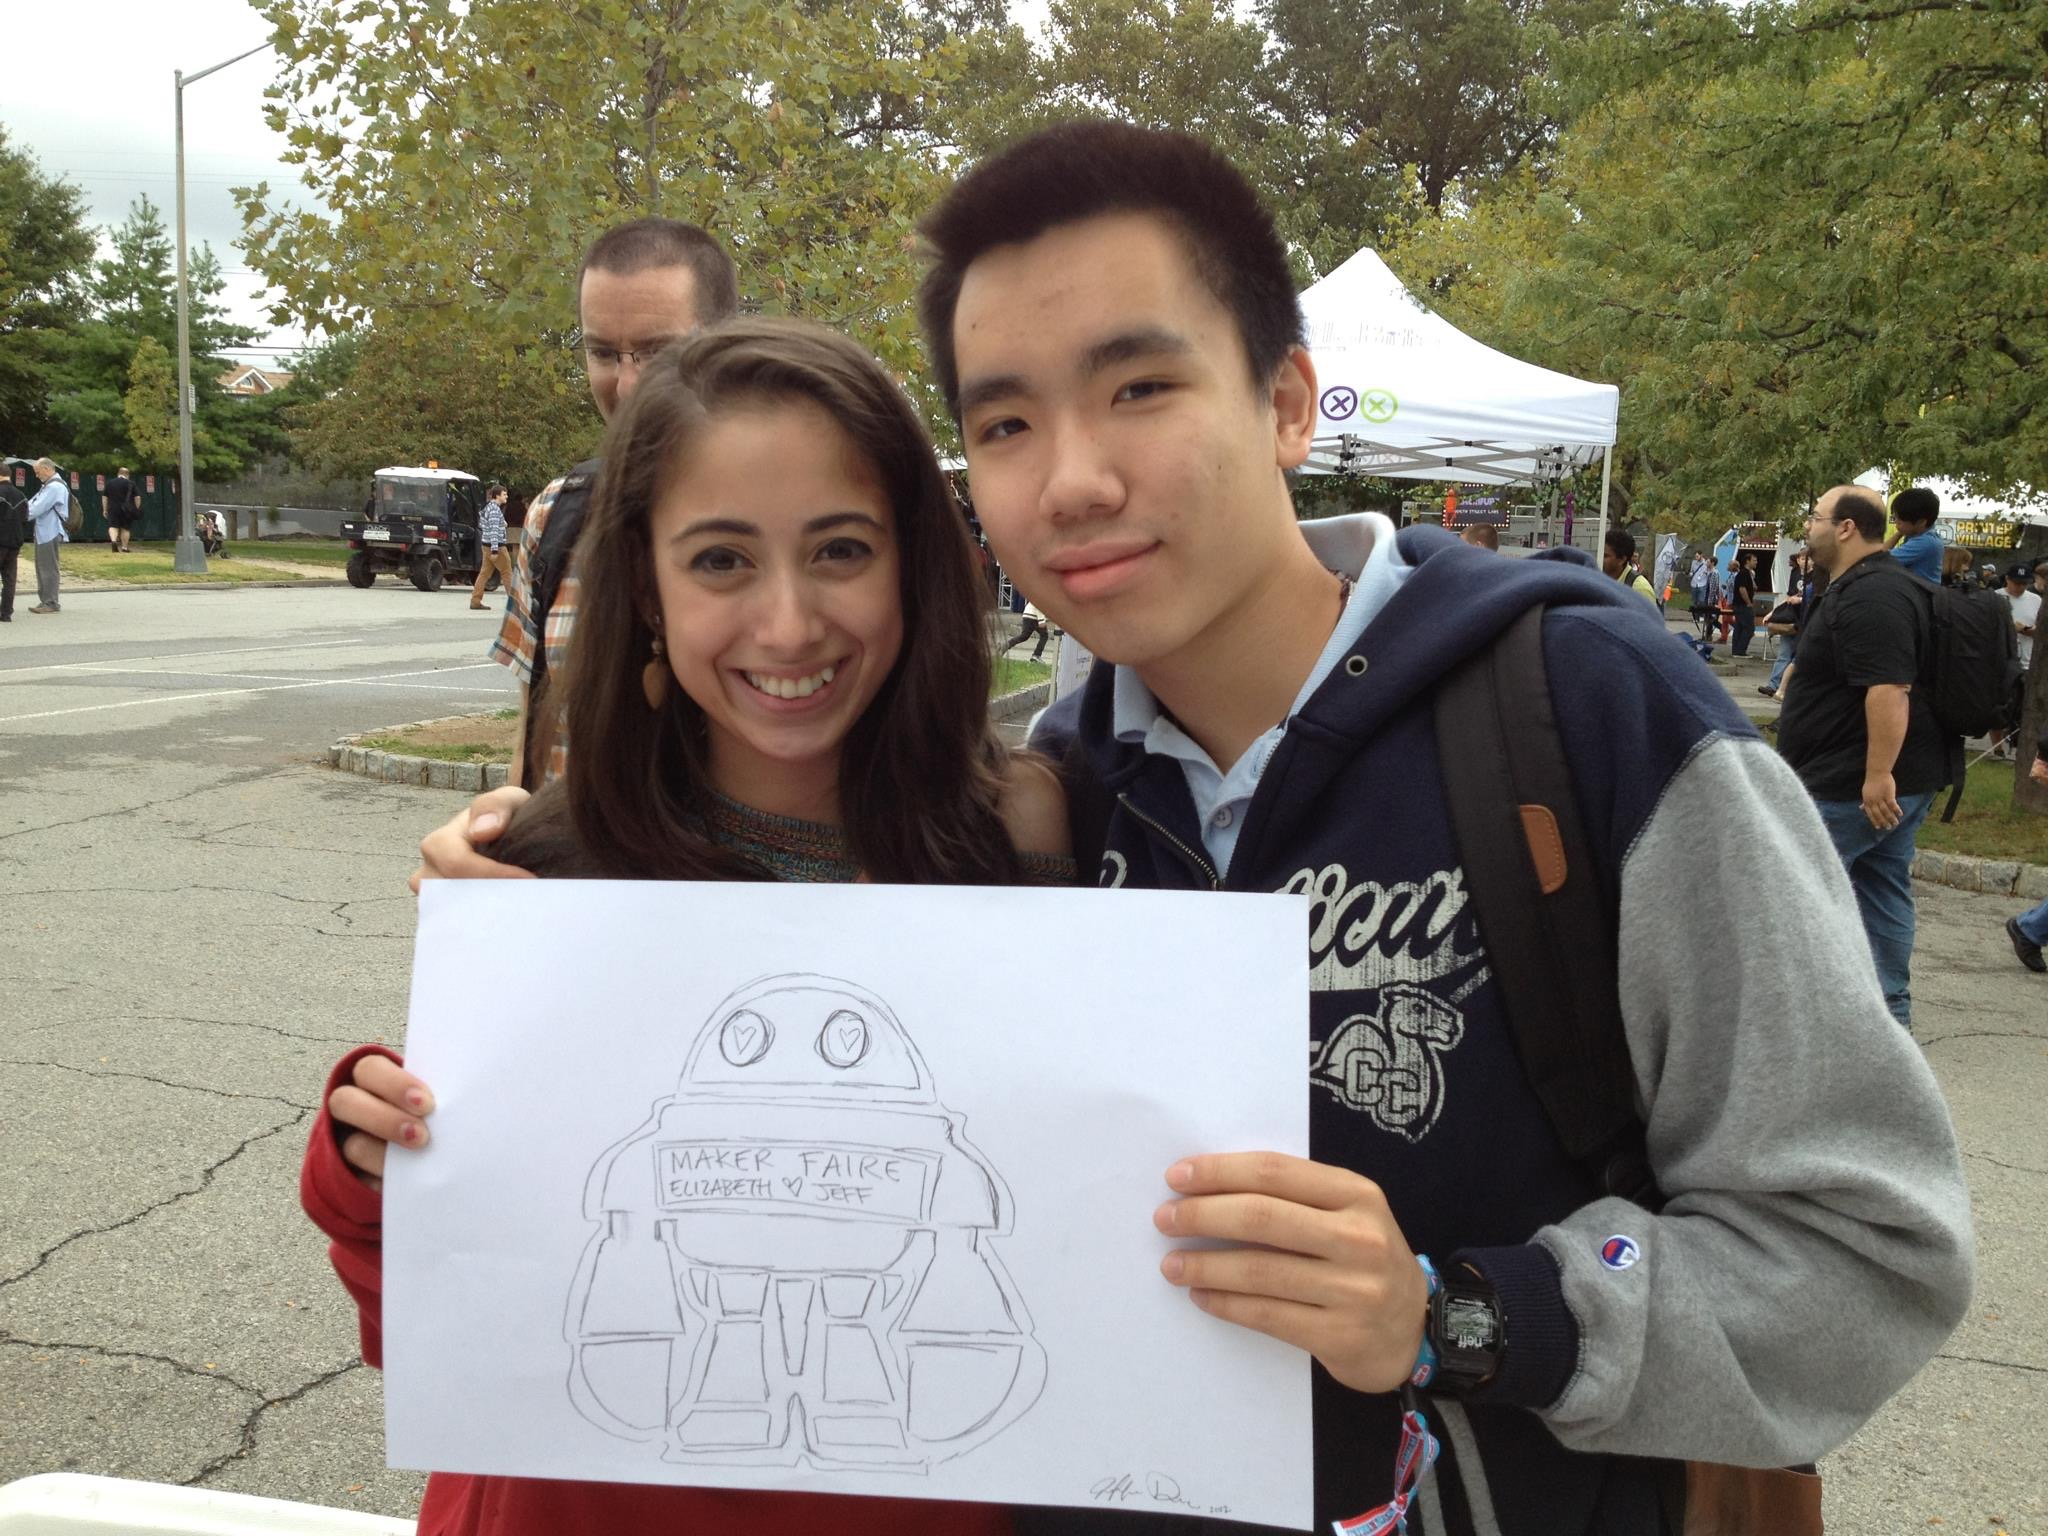 maker faire drawing activity.JPG